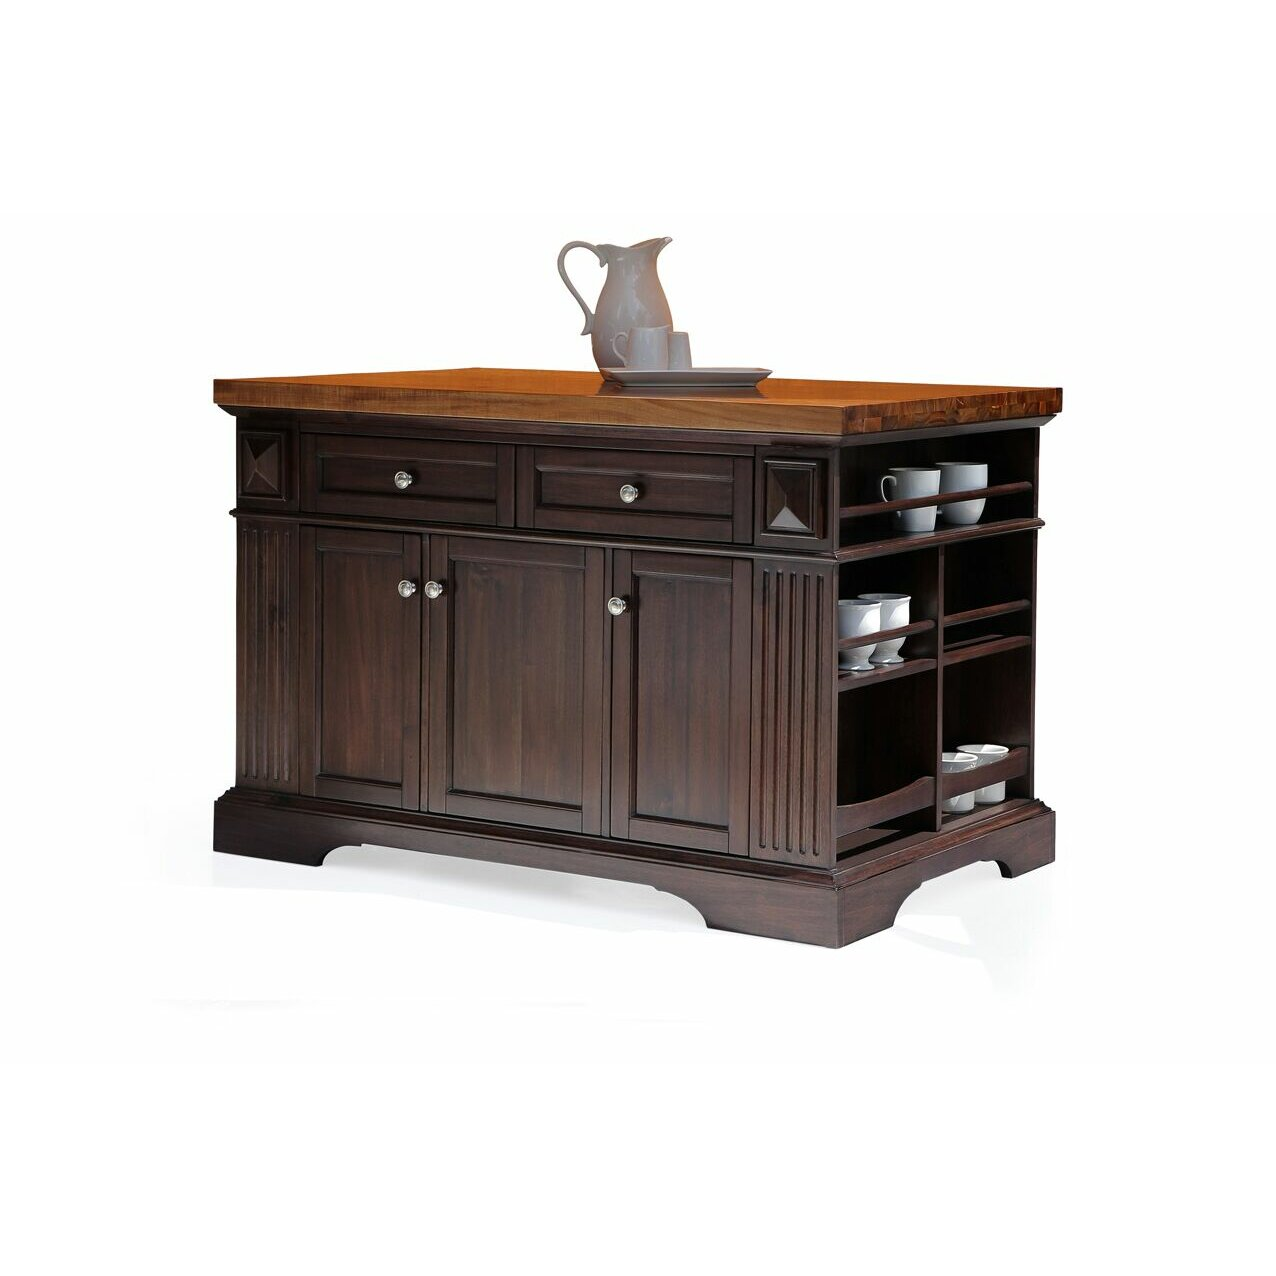 Kitchen Island Furniture: 222 Fifth Furniture Greenwich Kitchen Island With Wood Top